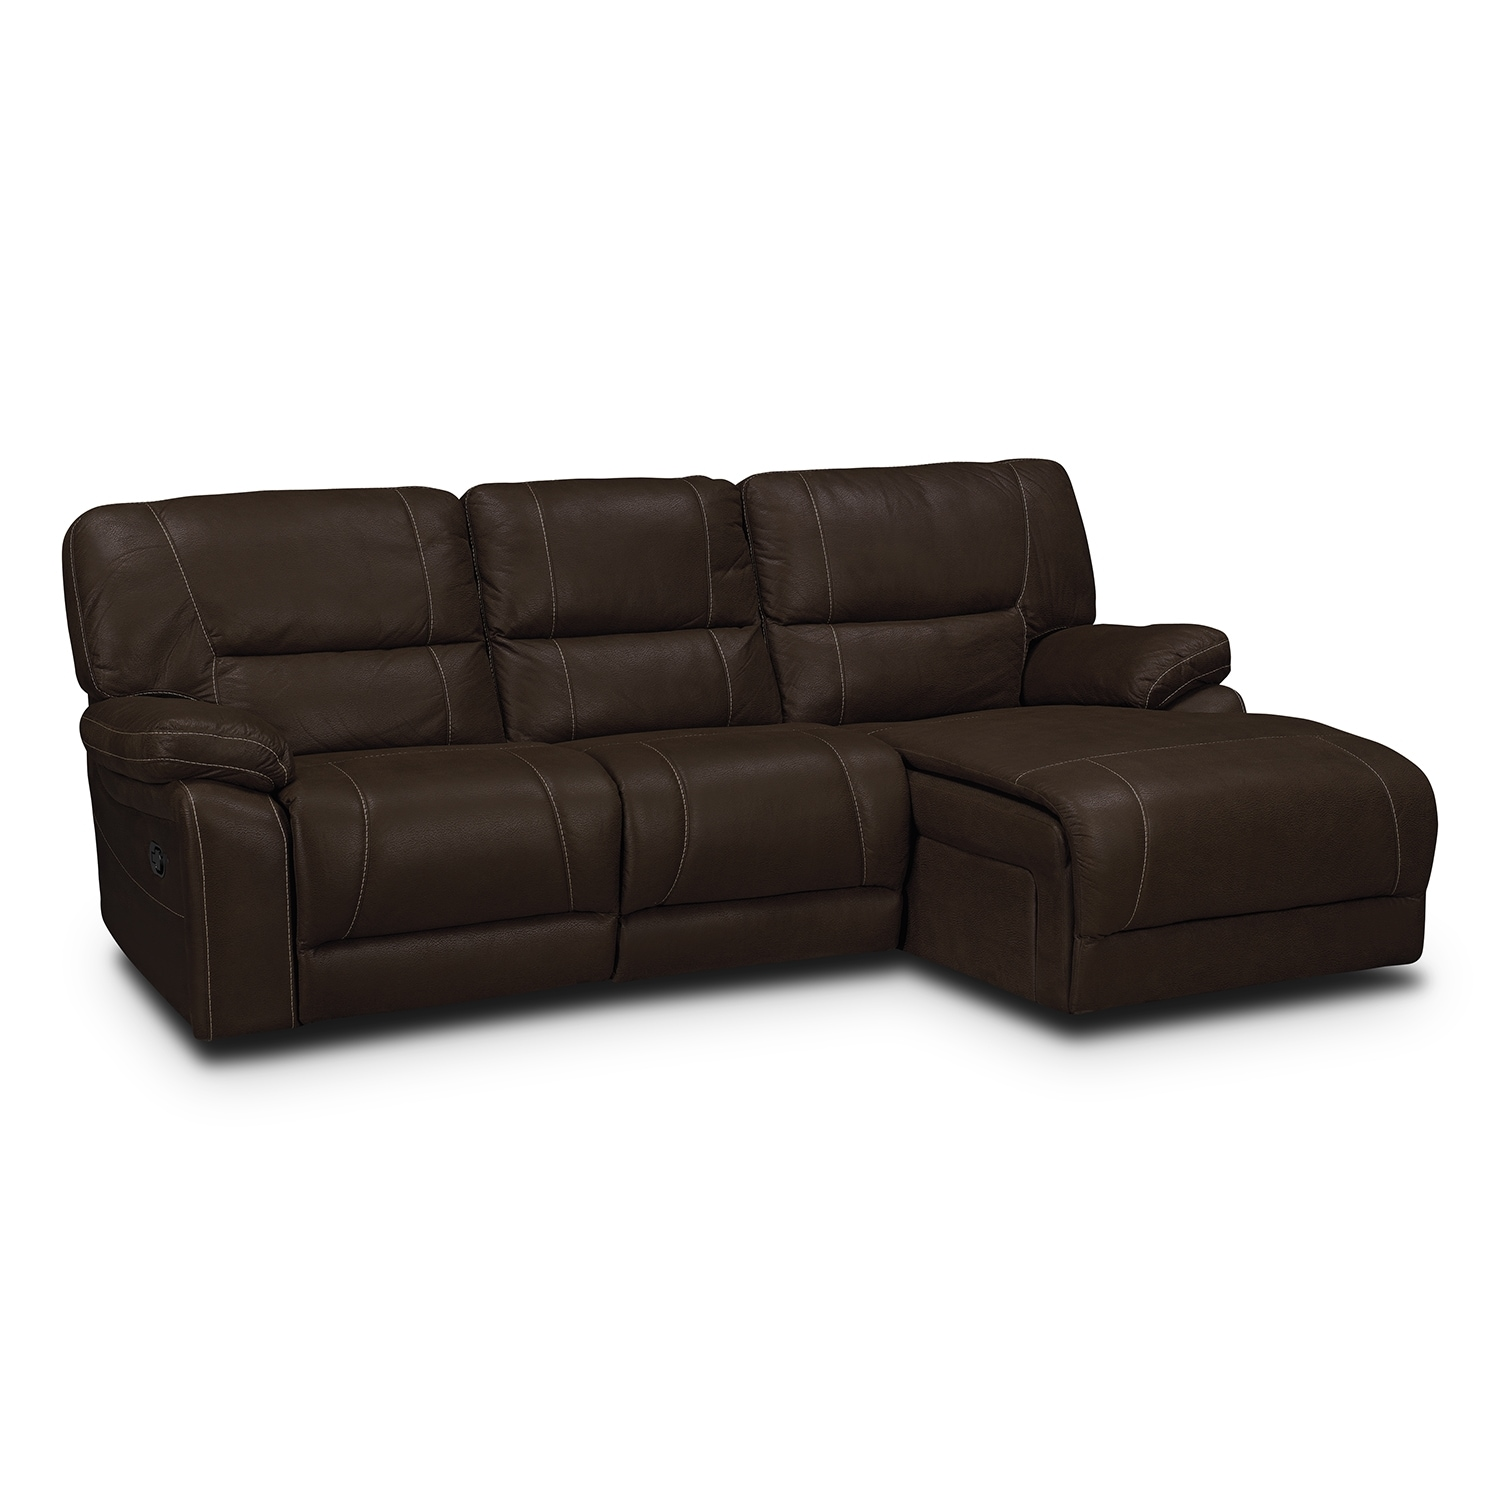 Living Room Furniture - Wyoming 2-Piece Reclining Sectional with Right-Facing Chaise  - Saddle Brown